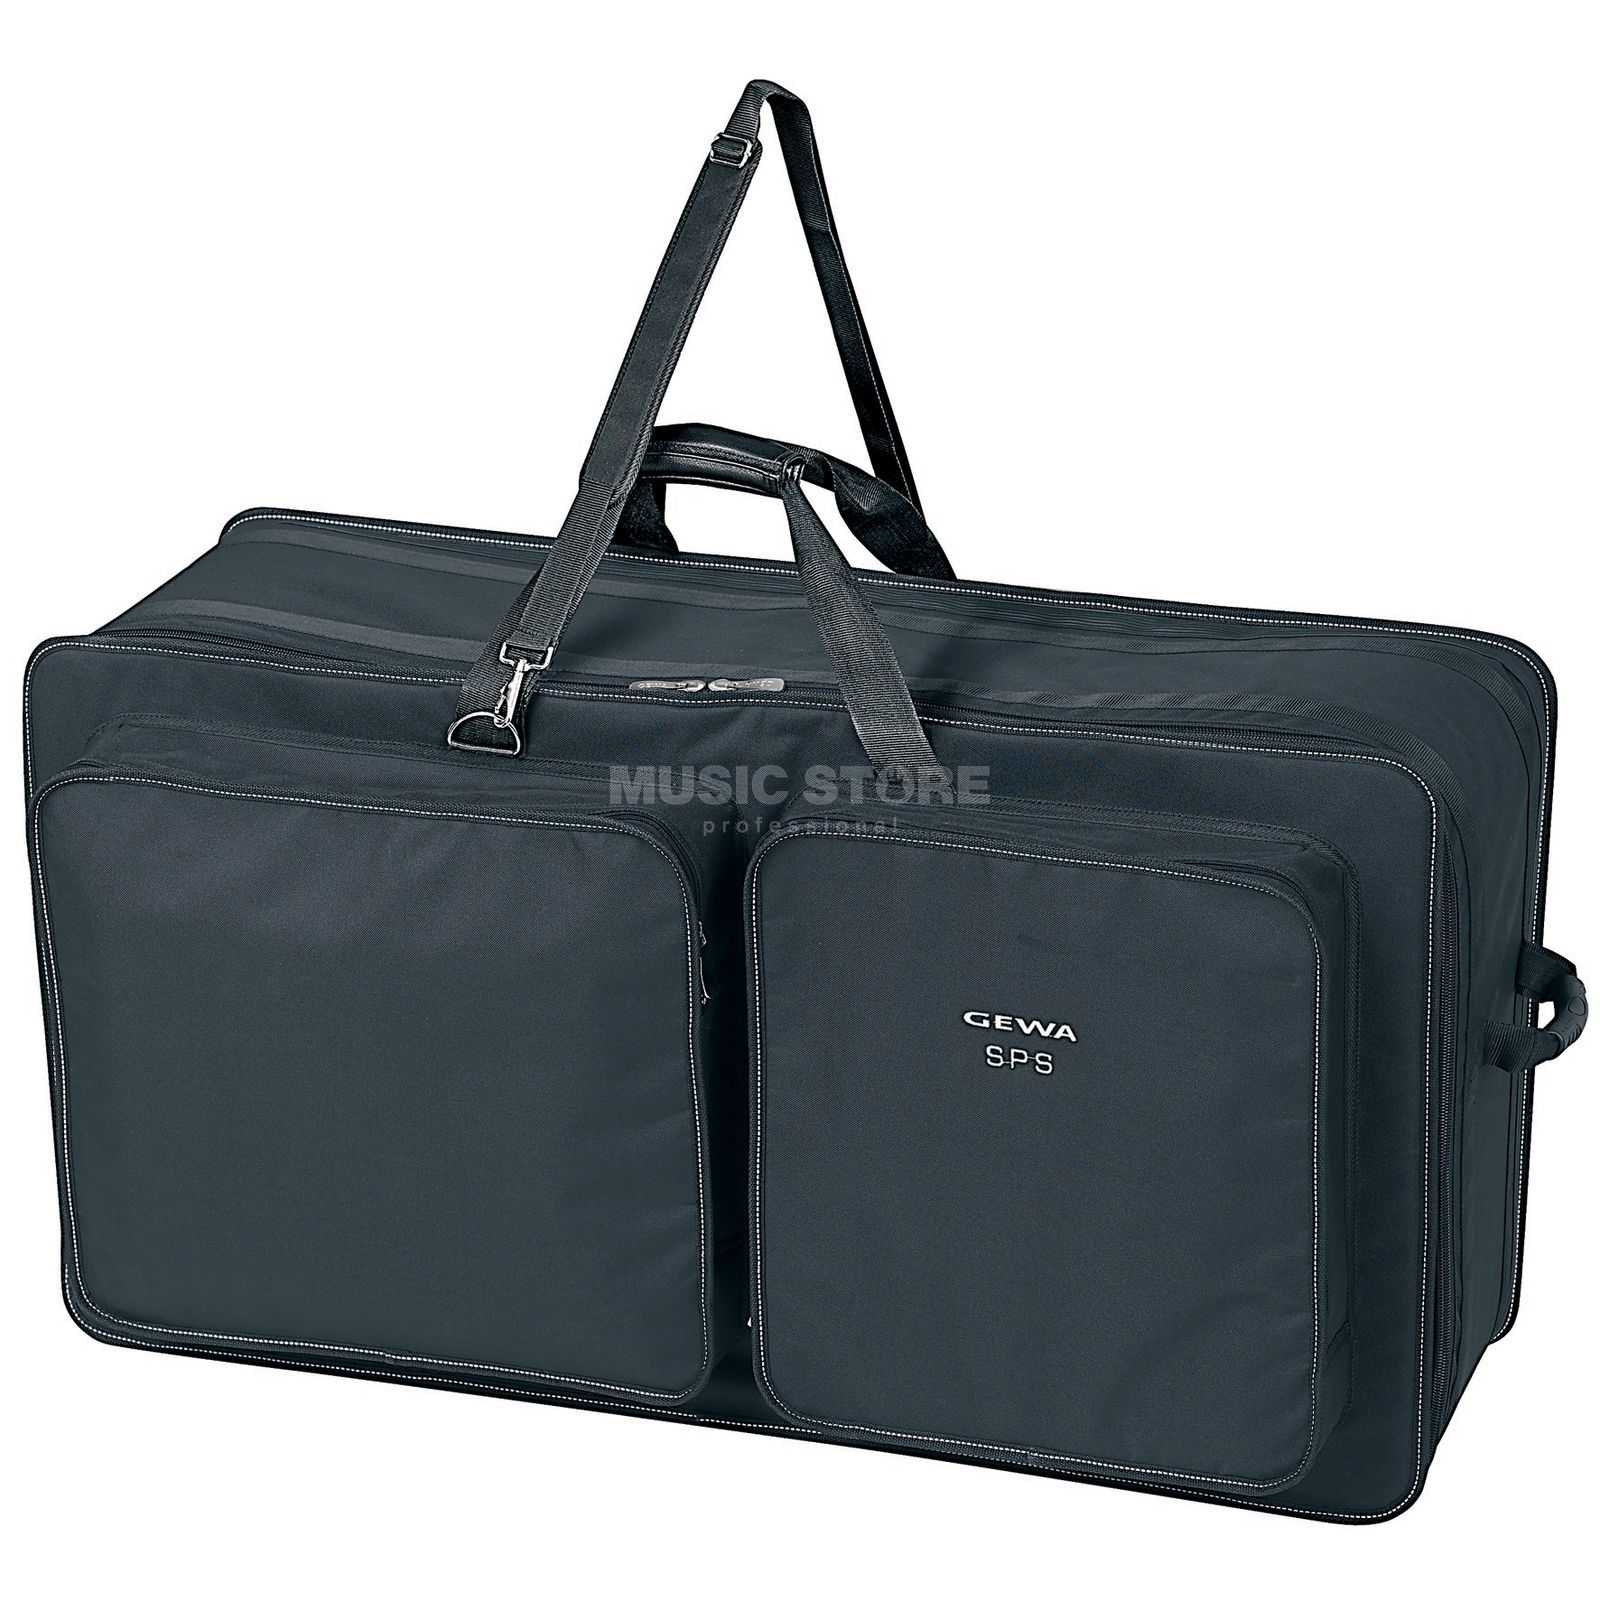 Gewa E Drum Rack Bag with Wheels Product Image